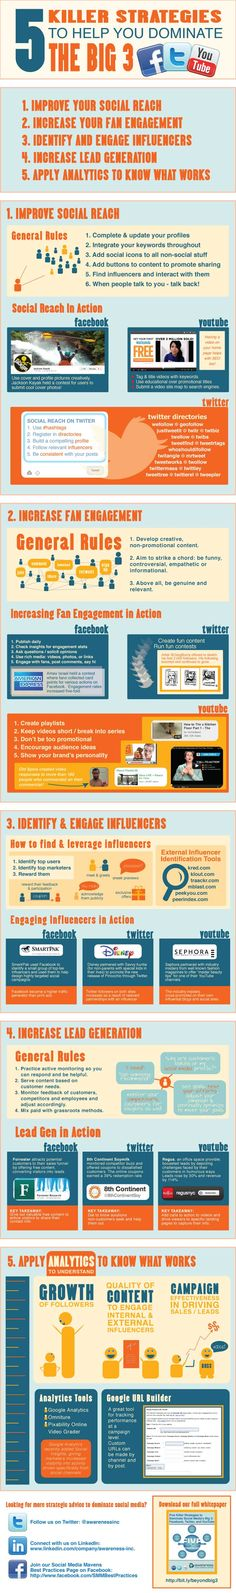 Social Media Killer Strategies-infographic